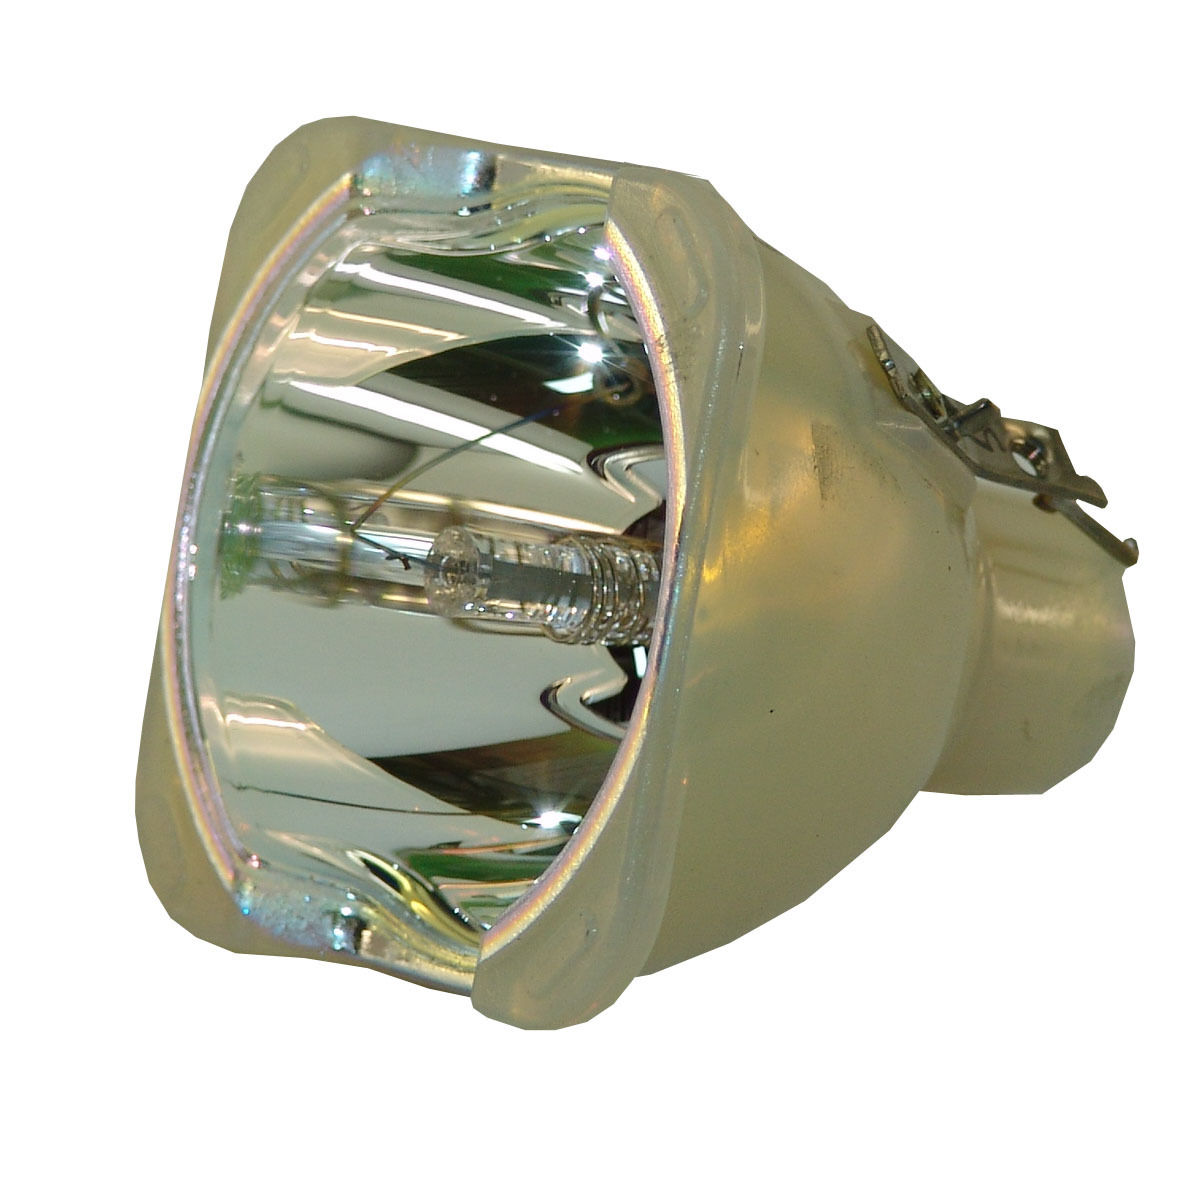 Compatible Bare Bulb SP.89601.001 BL-FS300A BLFS300A for OPTOMA EP759 Projector Bulb Lamp without housing 100% original bare projector lamp bulb bl fu280b sp 8by01gc01 bare lamp for ex765 ew766